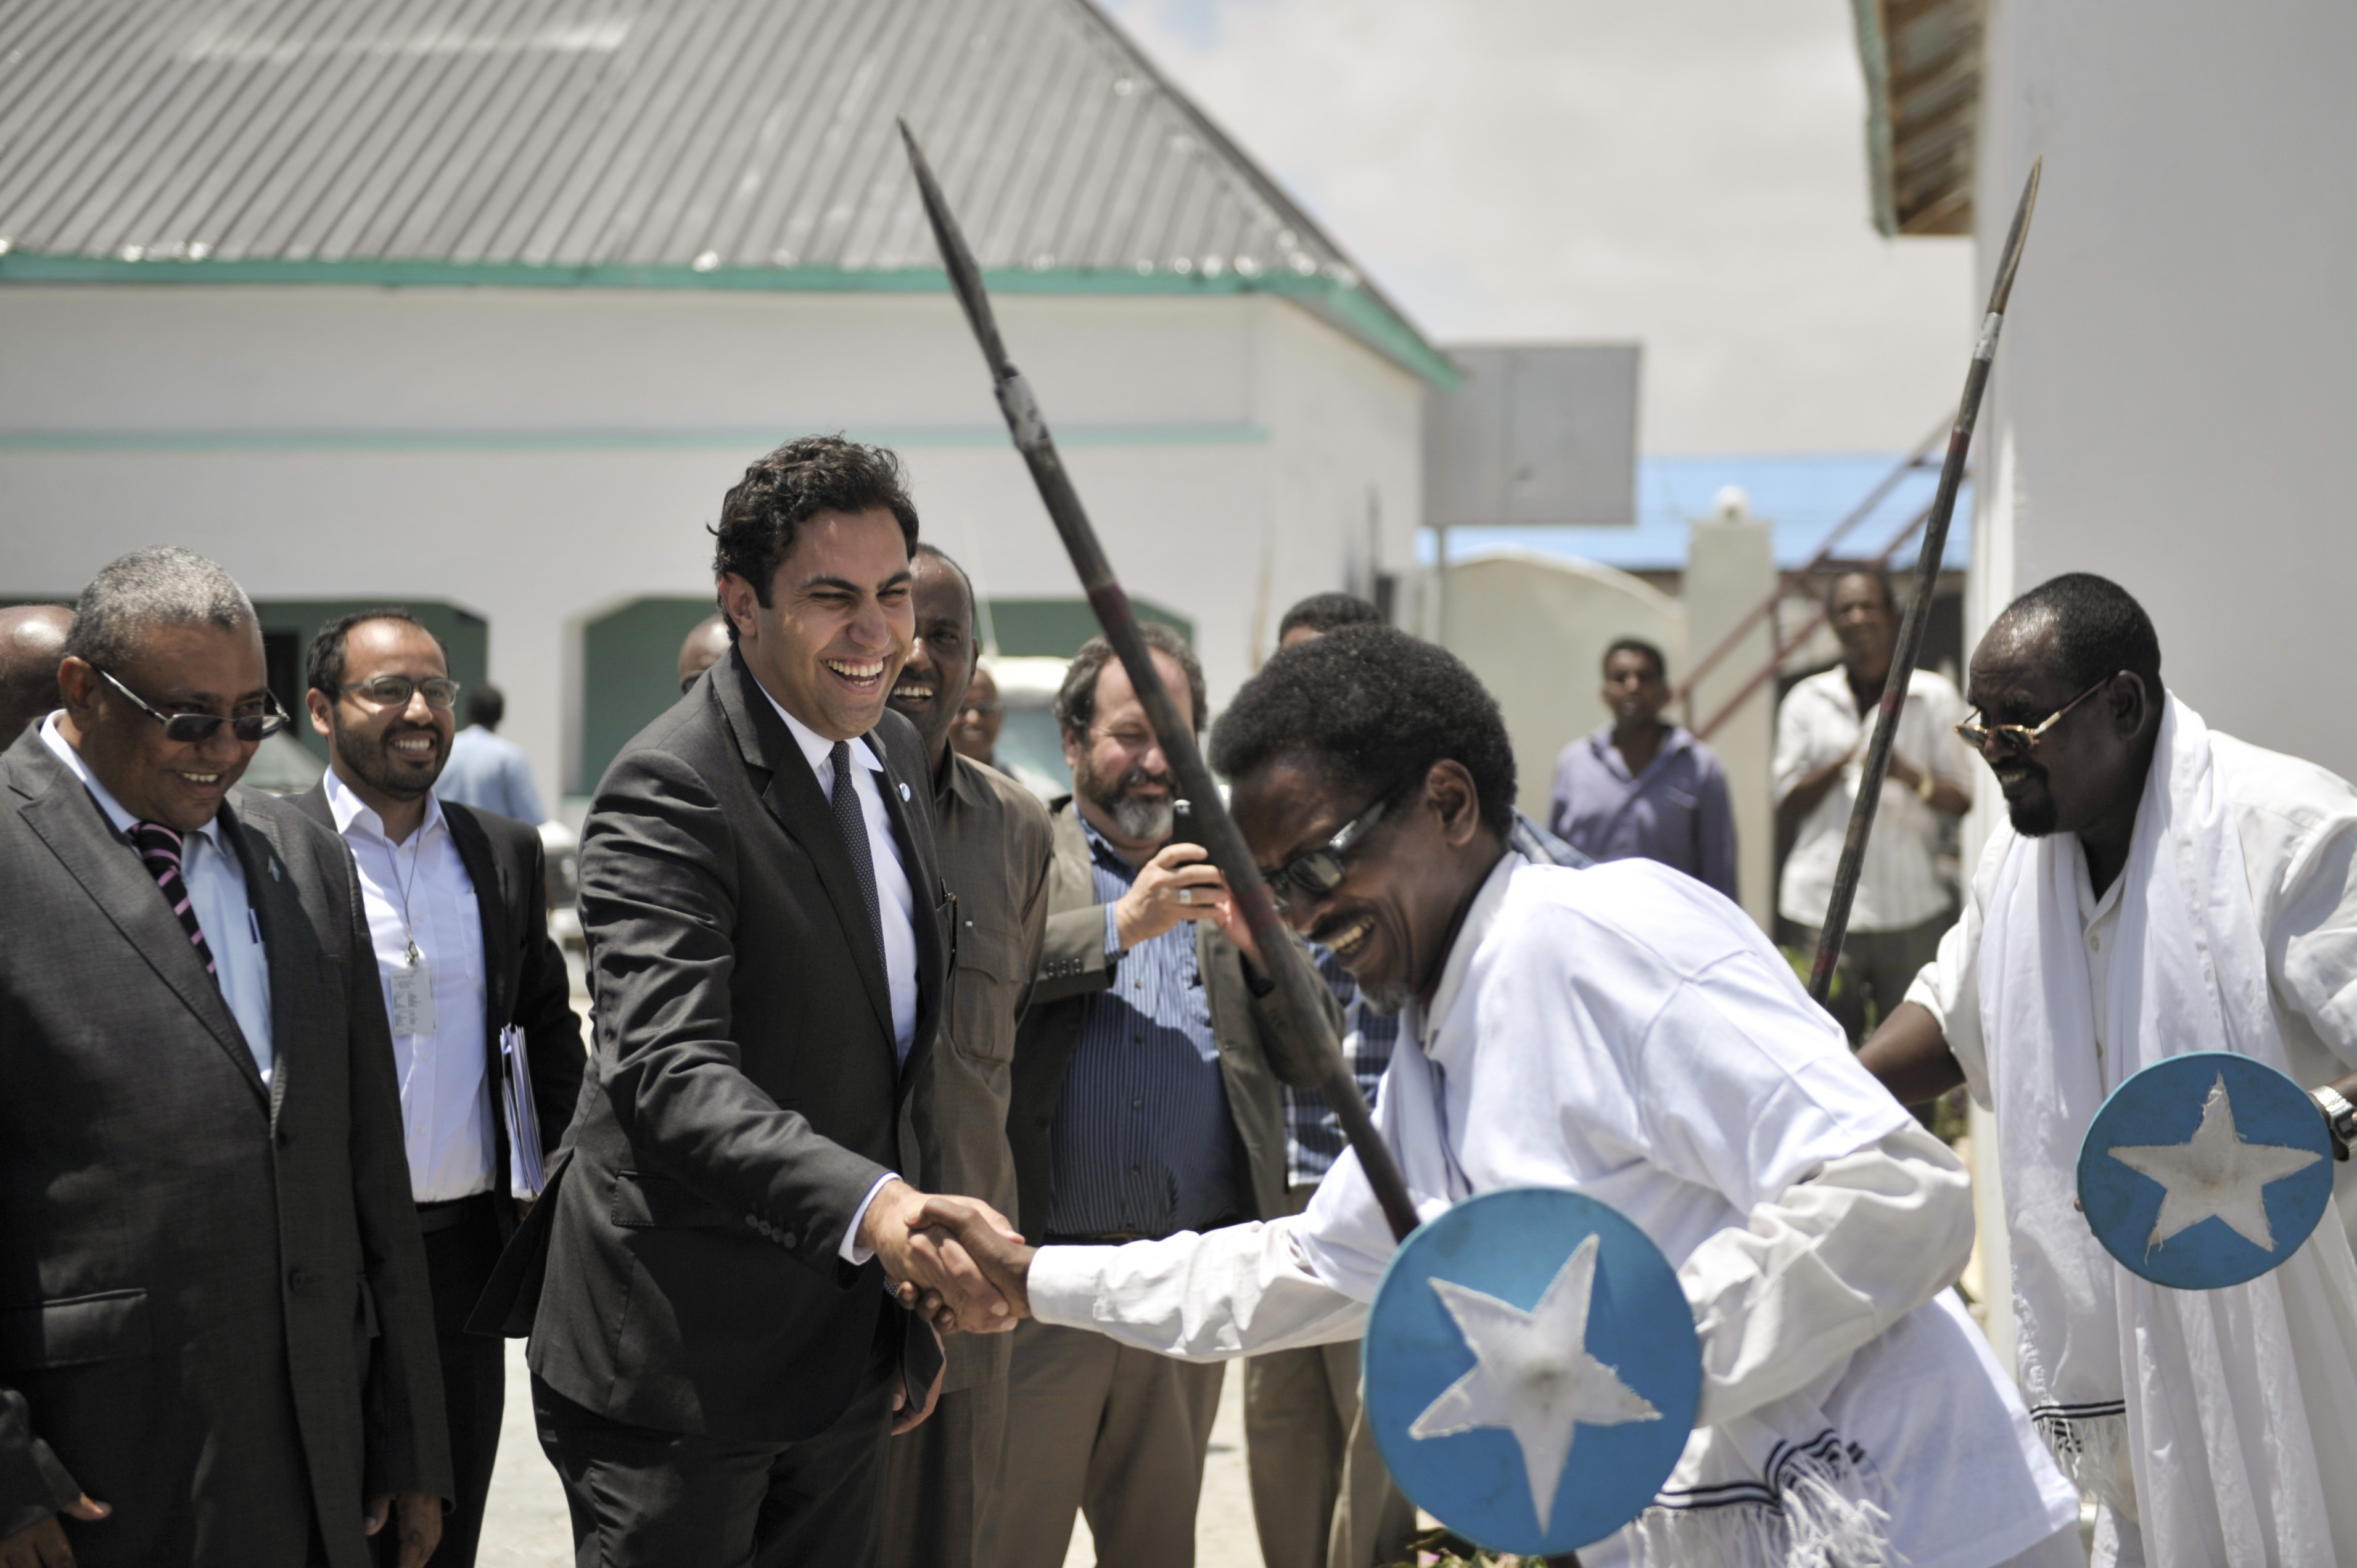 Envoy on Youth, Ahmed Alhendawi, is greeted at the Ministry of Youth by Somali dancers in Mogadishu